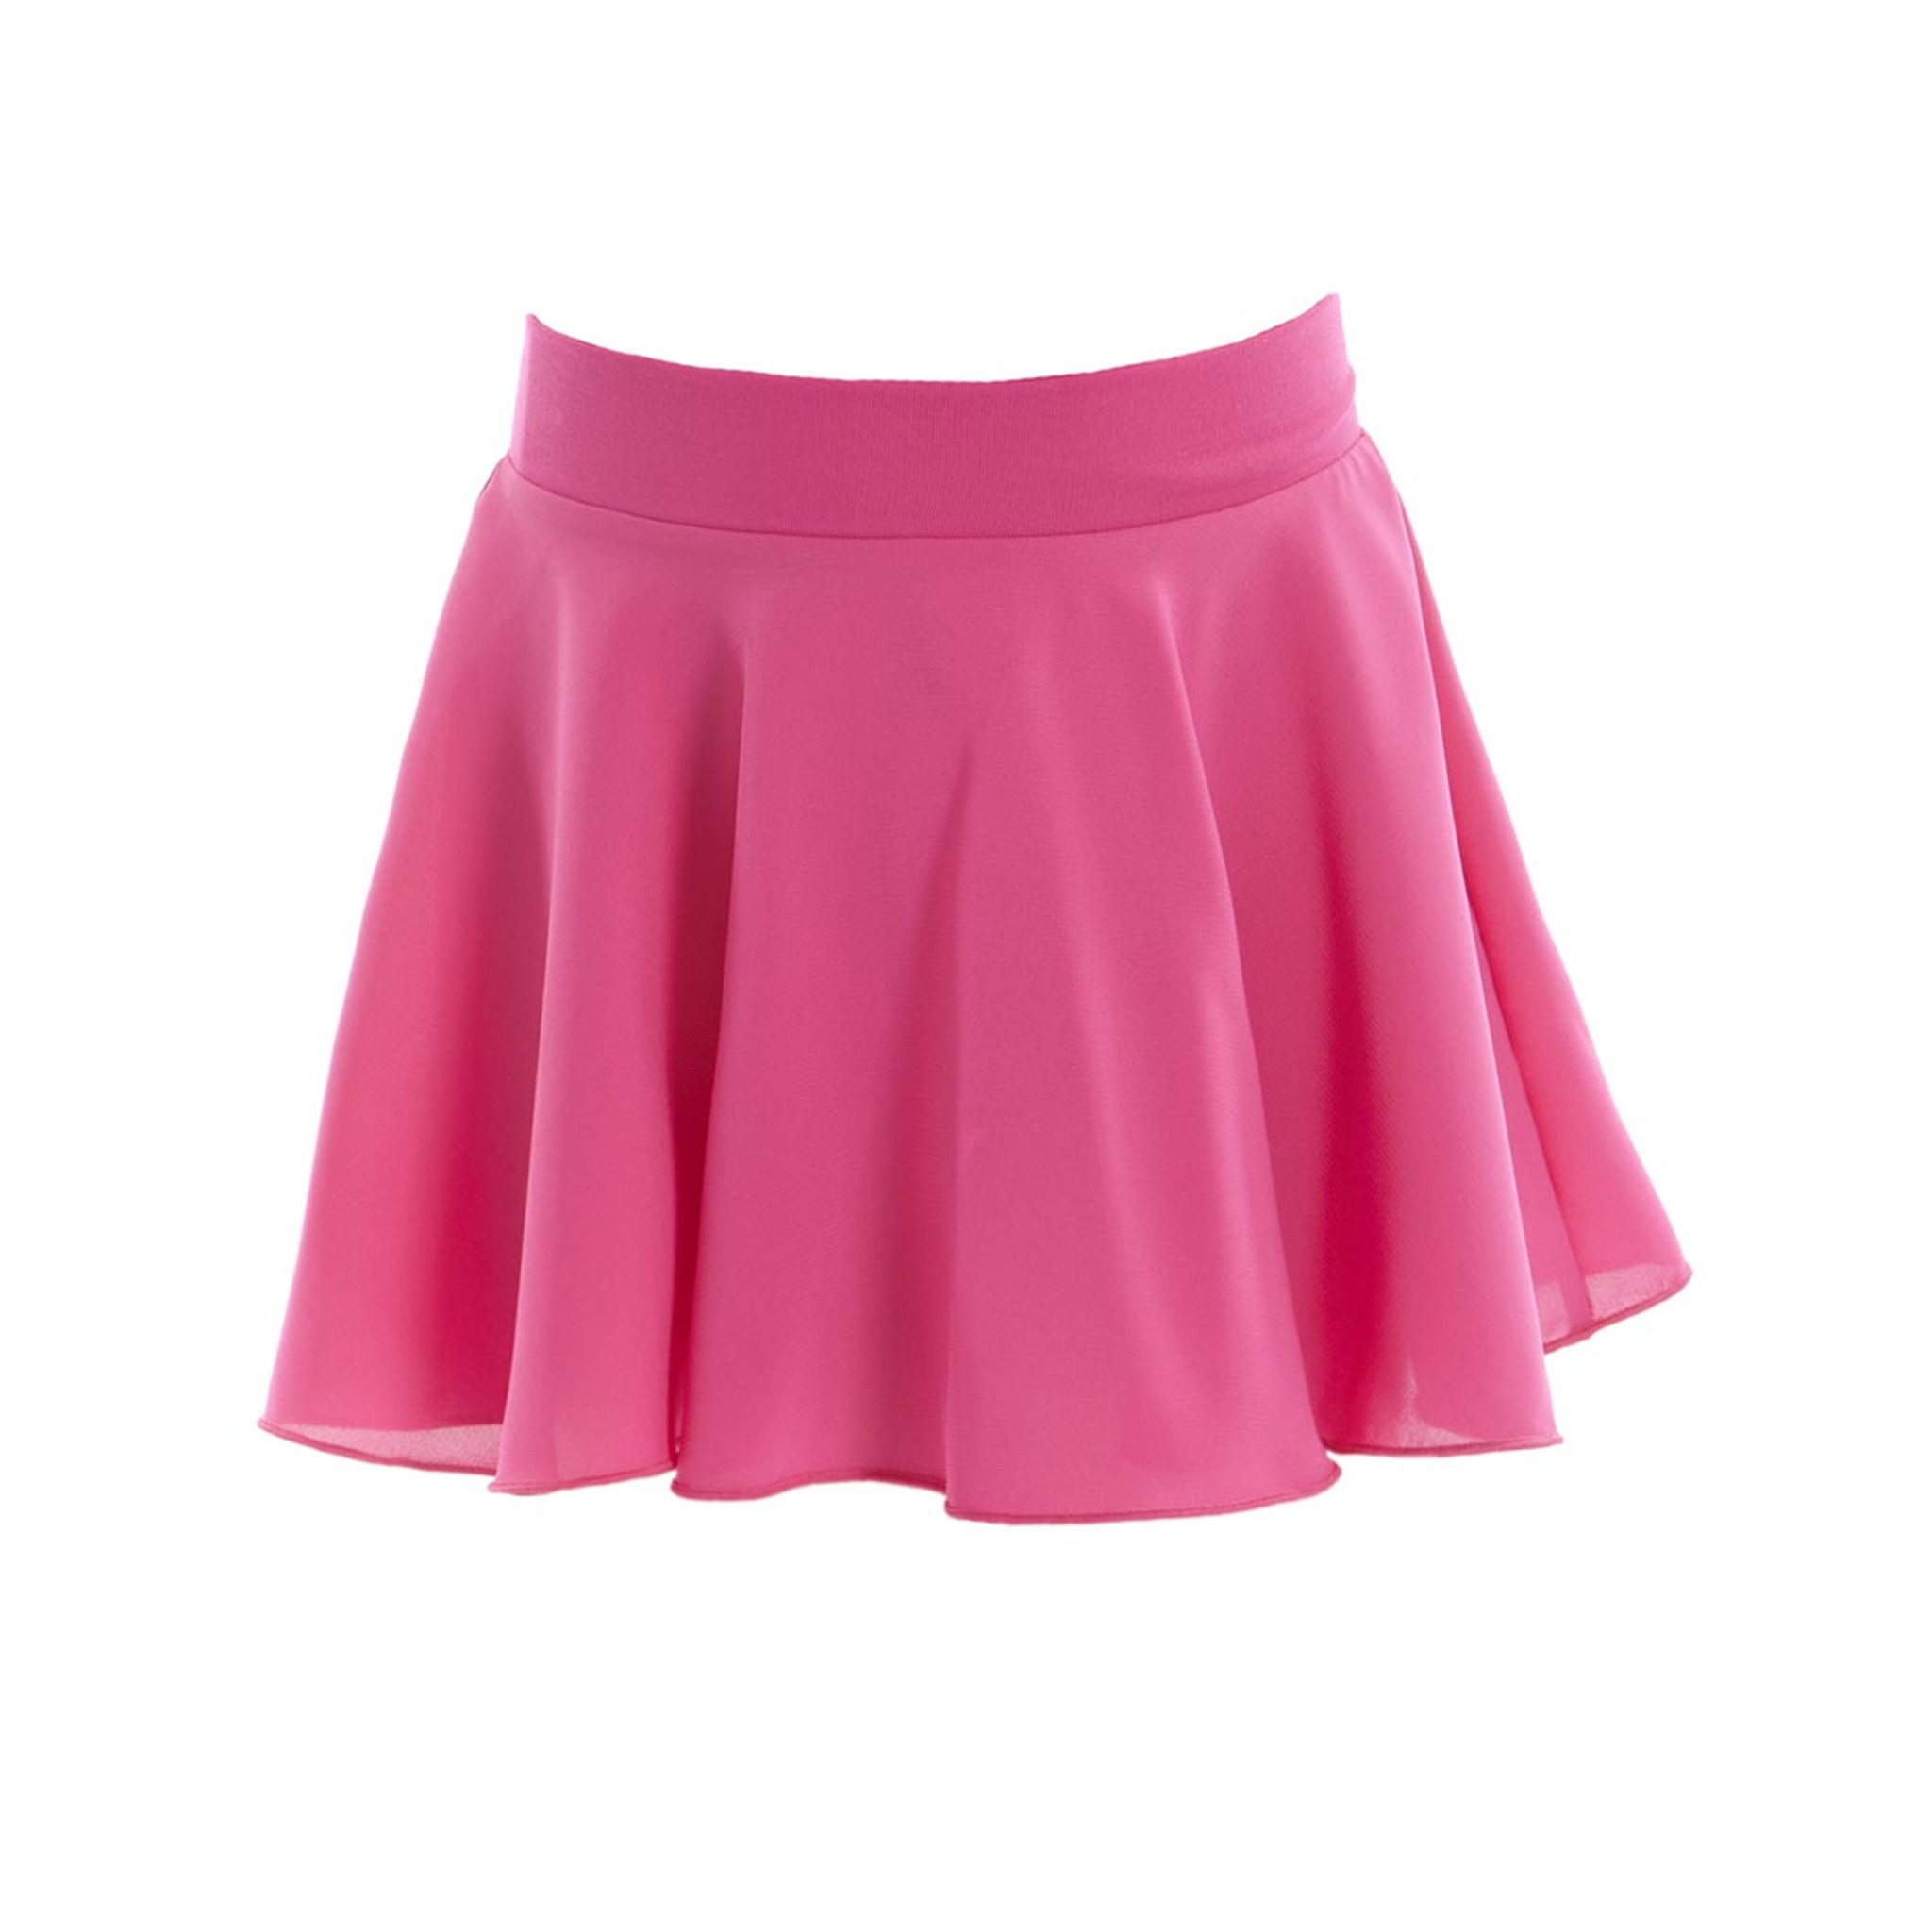 Energetiks Full Circle Skirt - Pull on Ballet Skirt